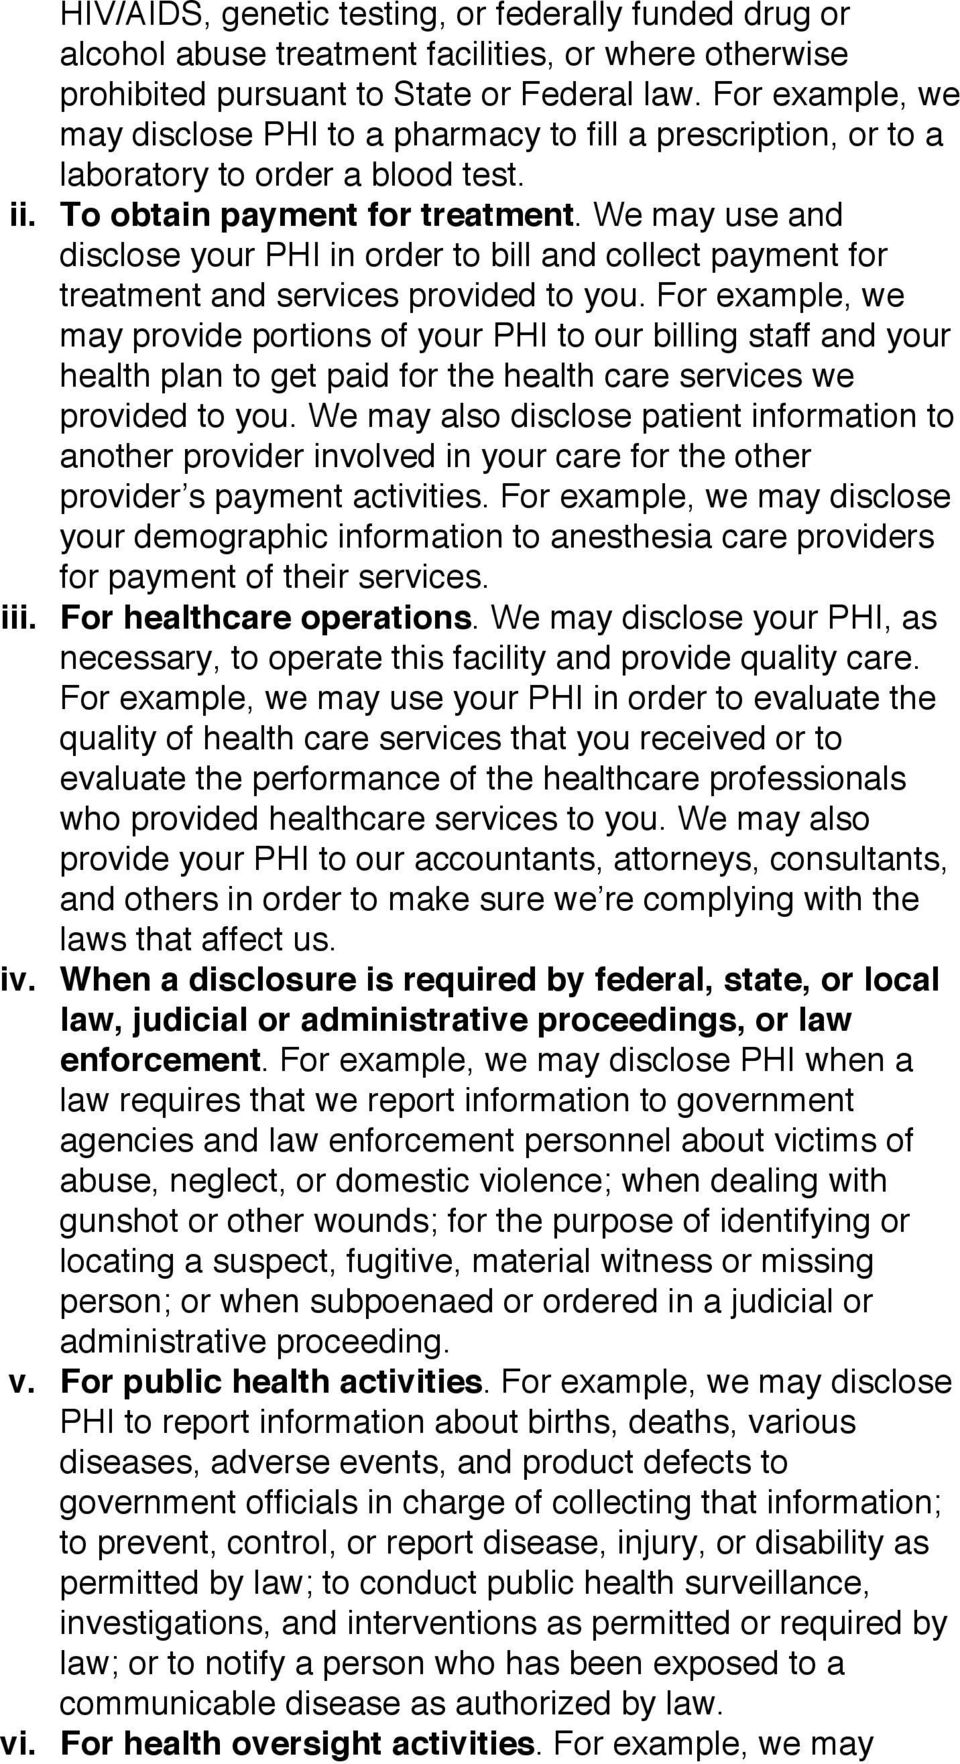 We may use and disclose your PHI in order to bill and collect payment for treatment and services provided to you.